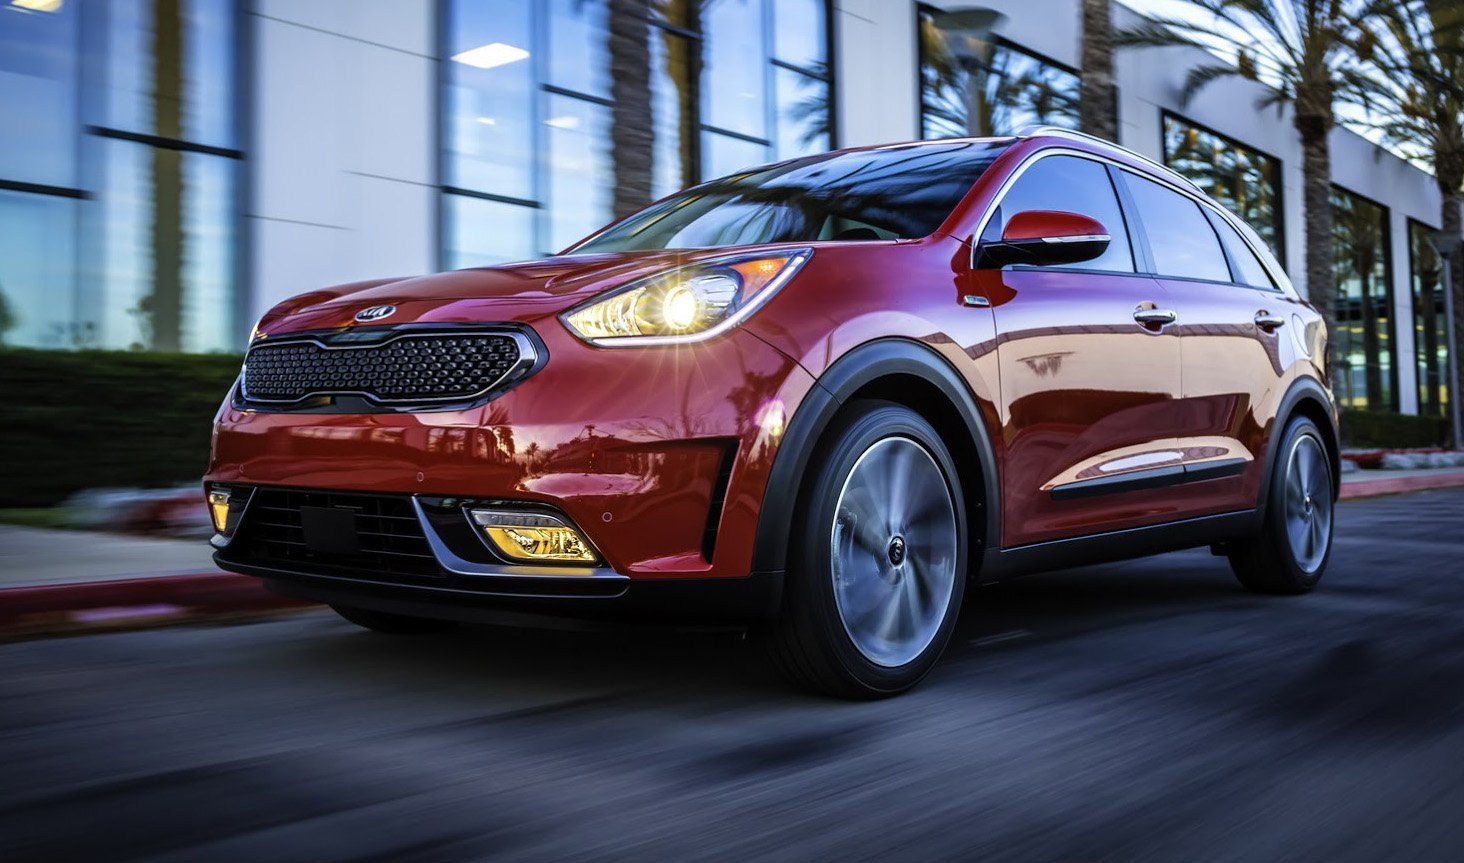 kia niro hybrid suv unveiled photos caradvice. Black Bedroom Furniture Sets. Home Design Ideas